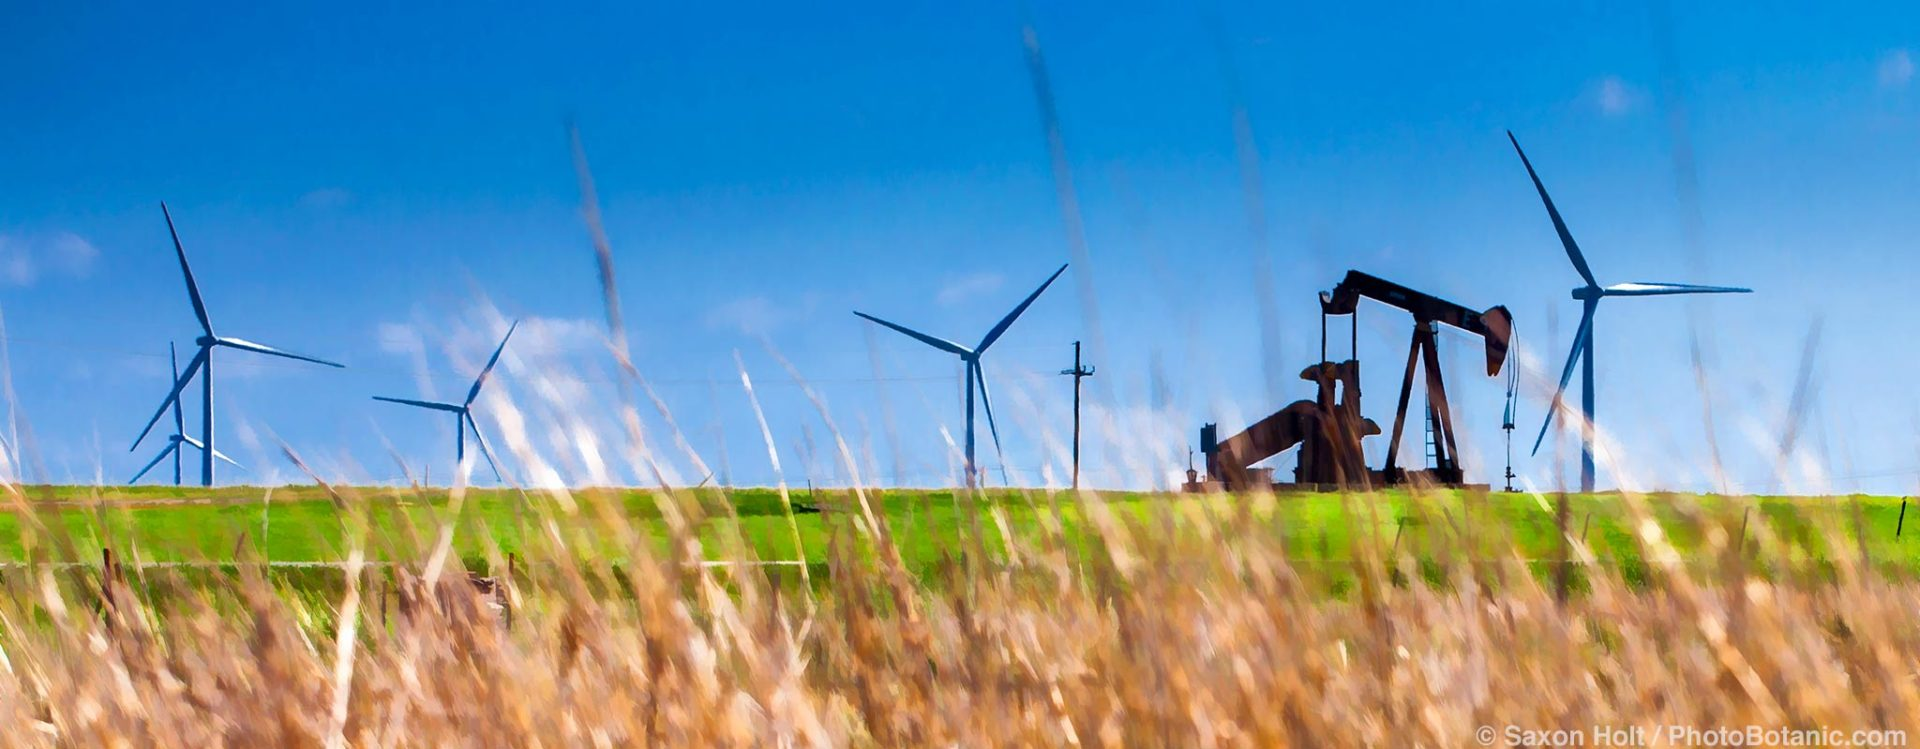 Energy old and new; Windfarm and Oil rig on the prairie